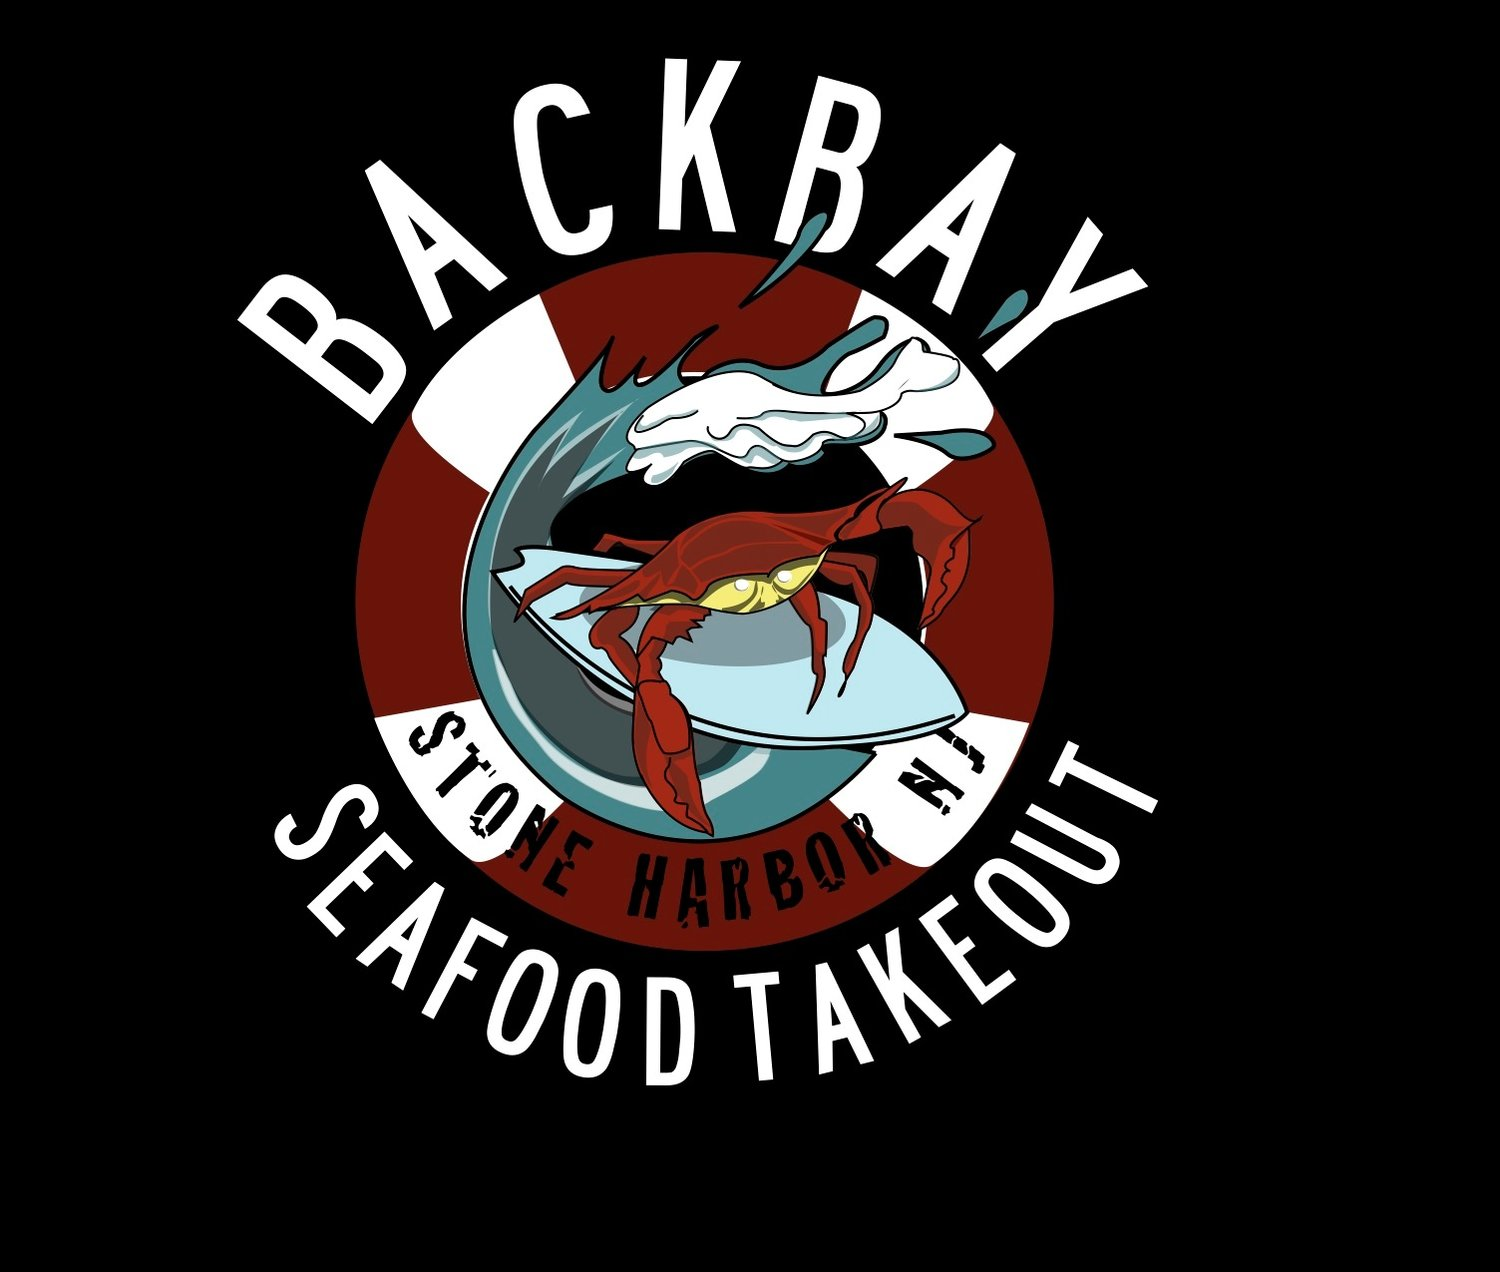 Back Bay Seafood